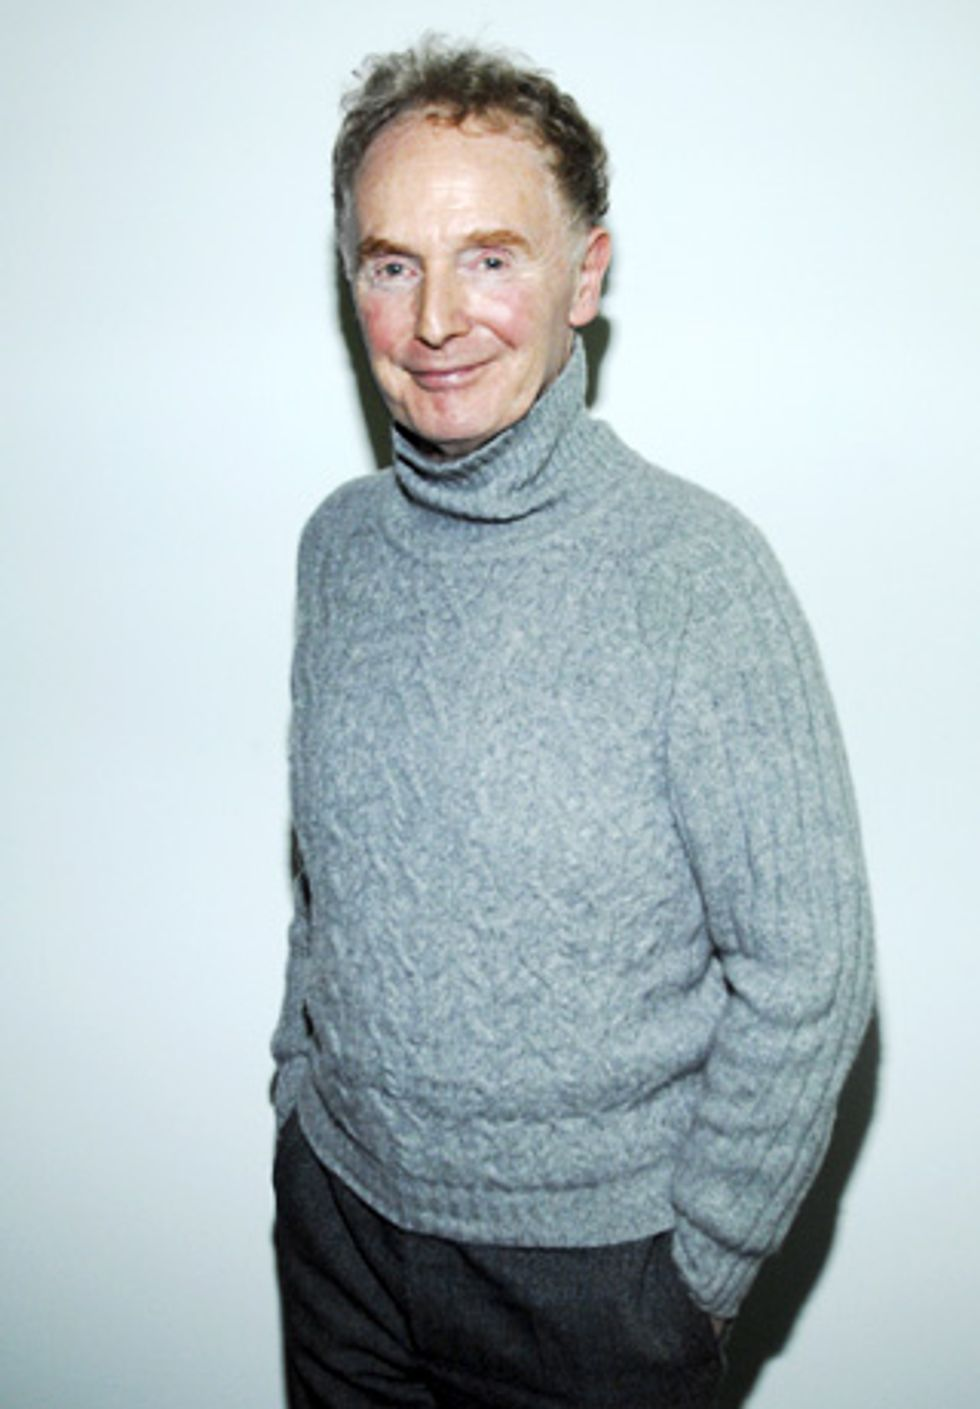 Malcolm McLaren On Paris, Capital of the XXIst Century and his Dior Musical